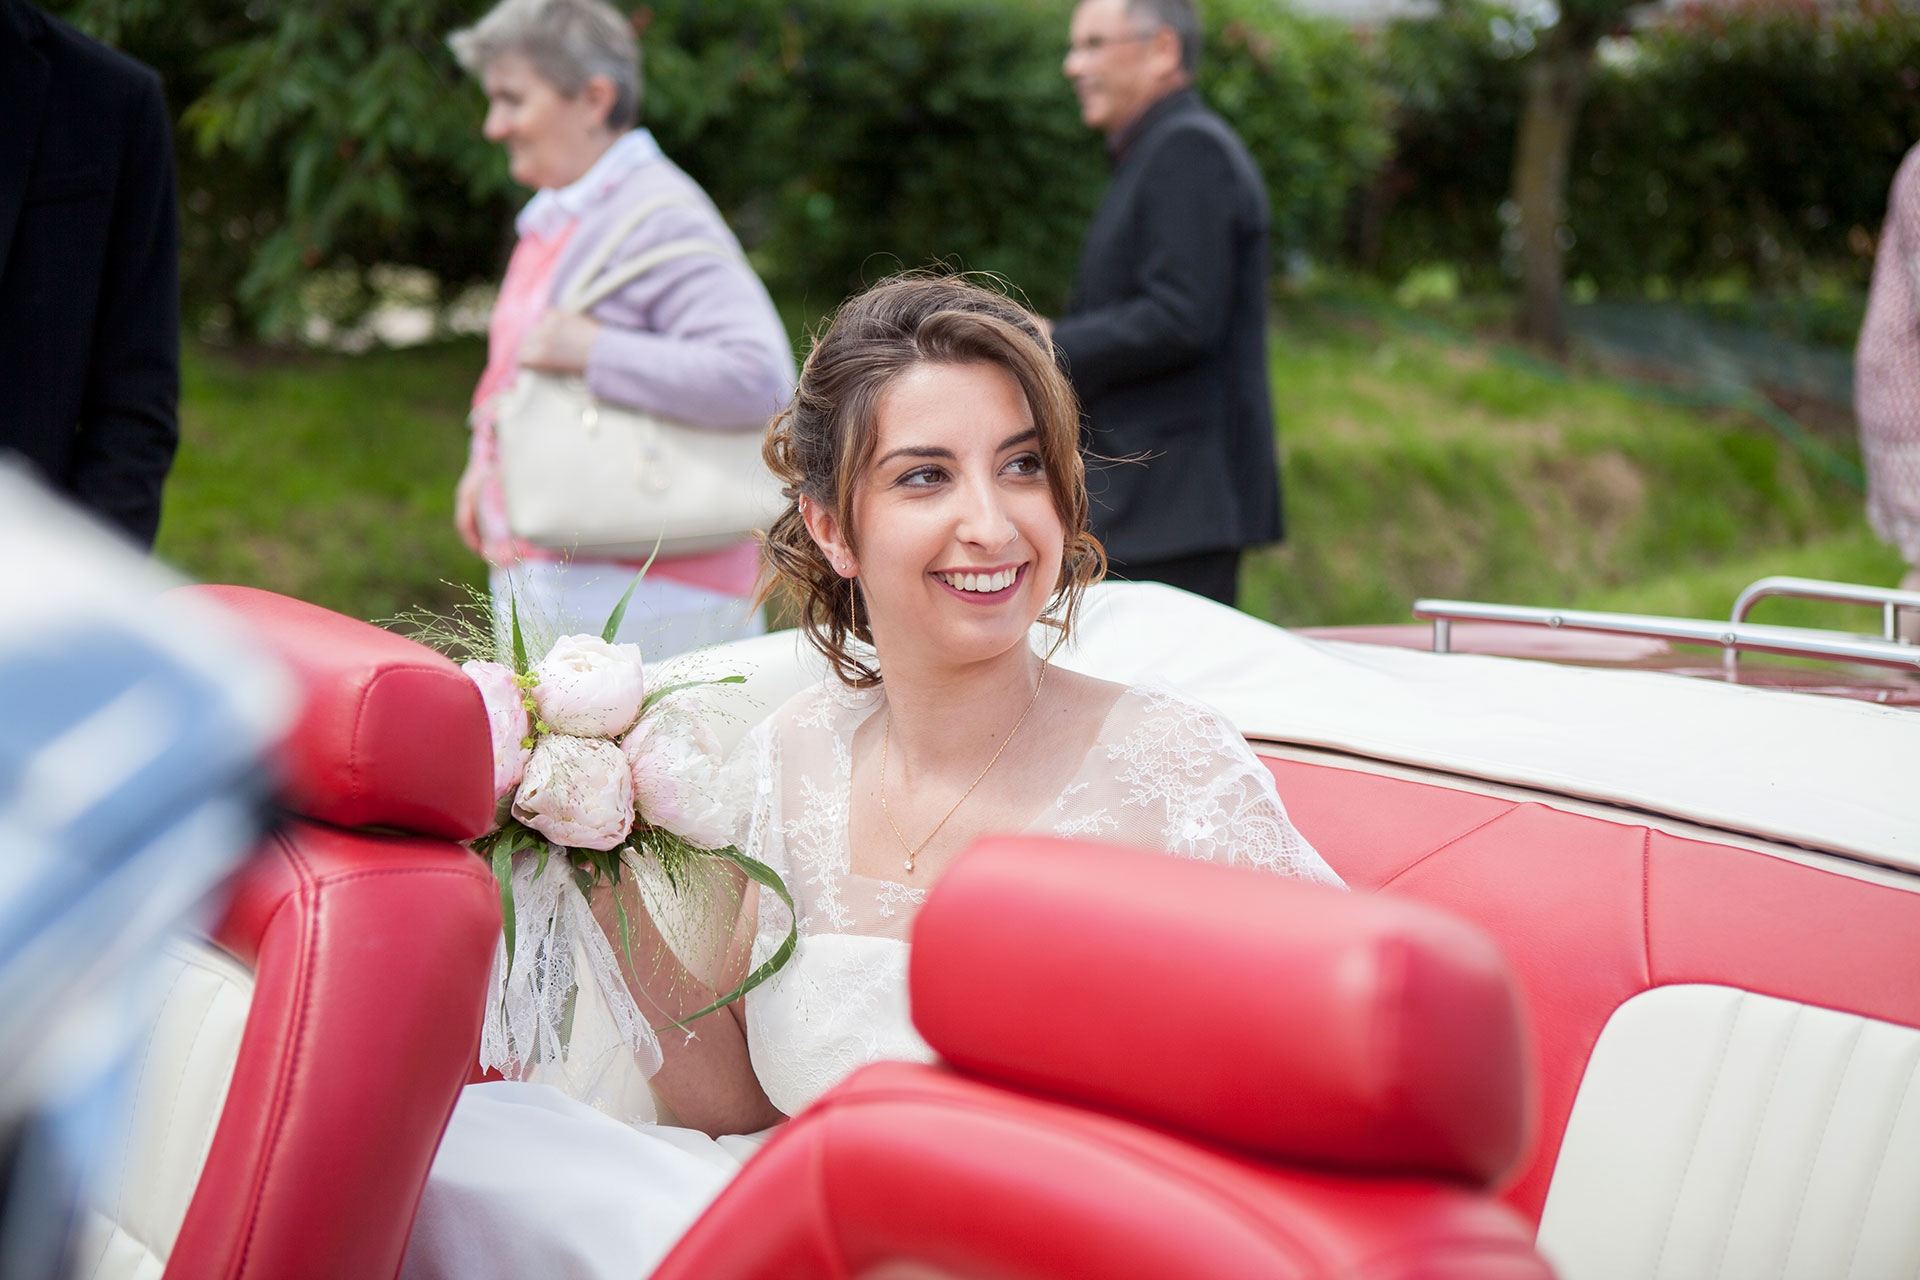 particuliers-evenements-mariages-oui-clementine&alexandre-17